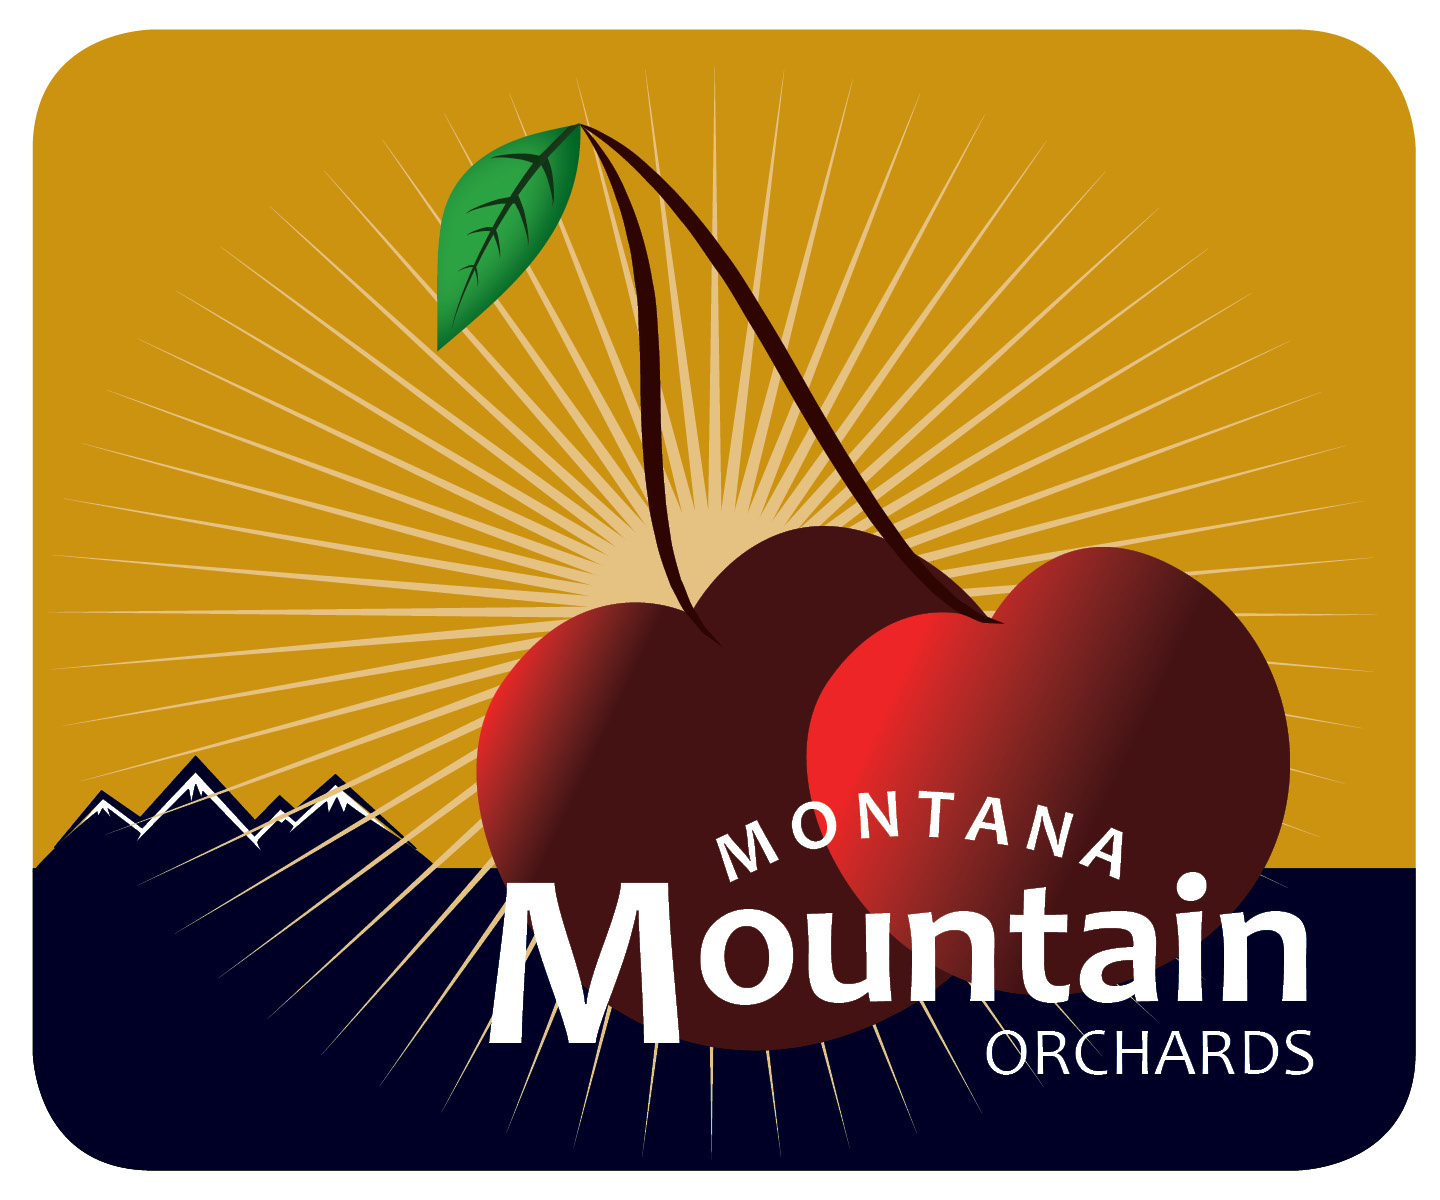 MT Mountain logo.jpg